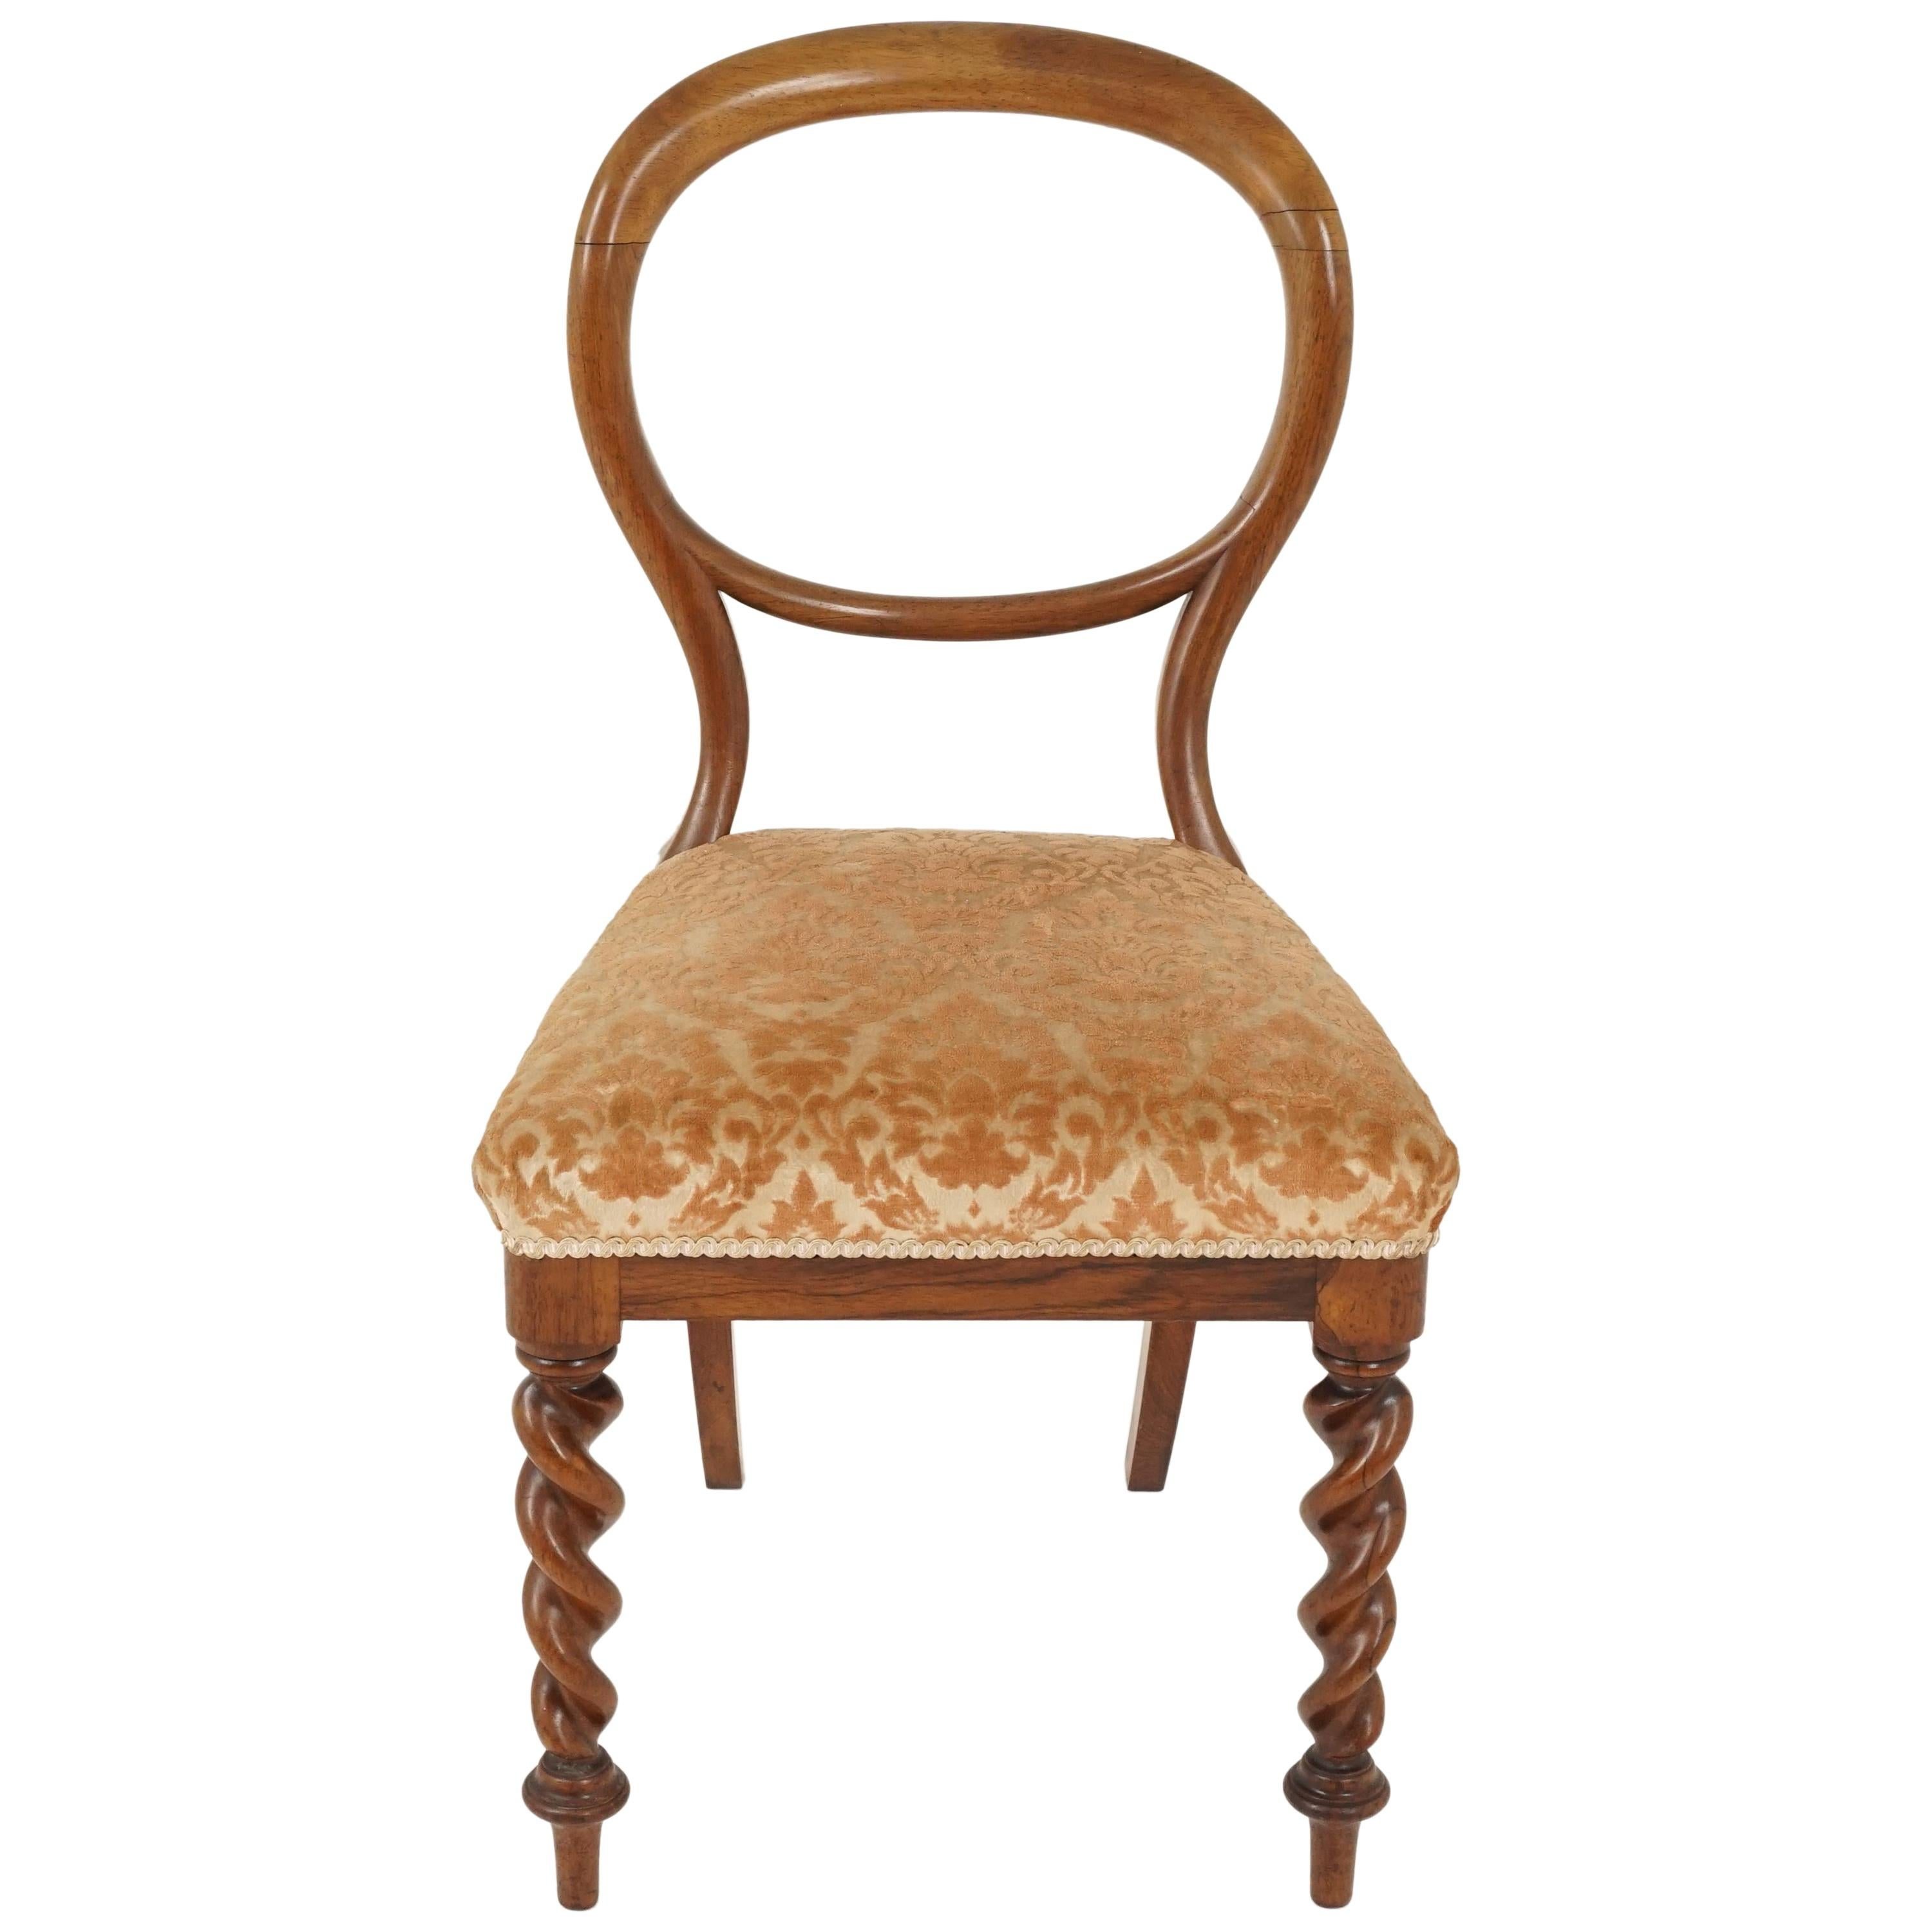 Antique Victorian Balloon Back Chair, Upholstered Chair, Scotland 1880, B2396